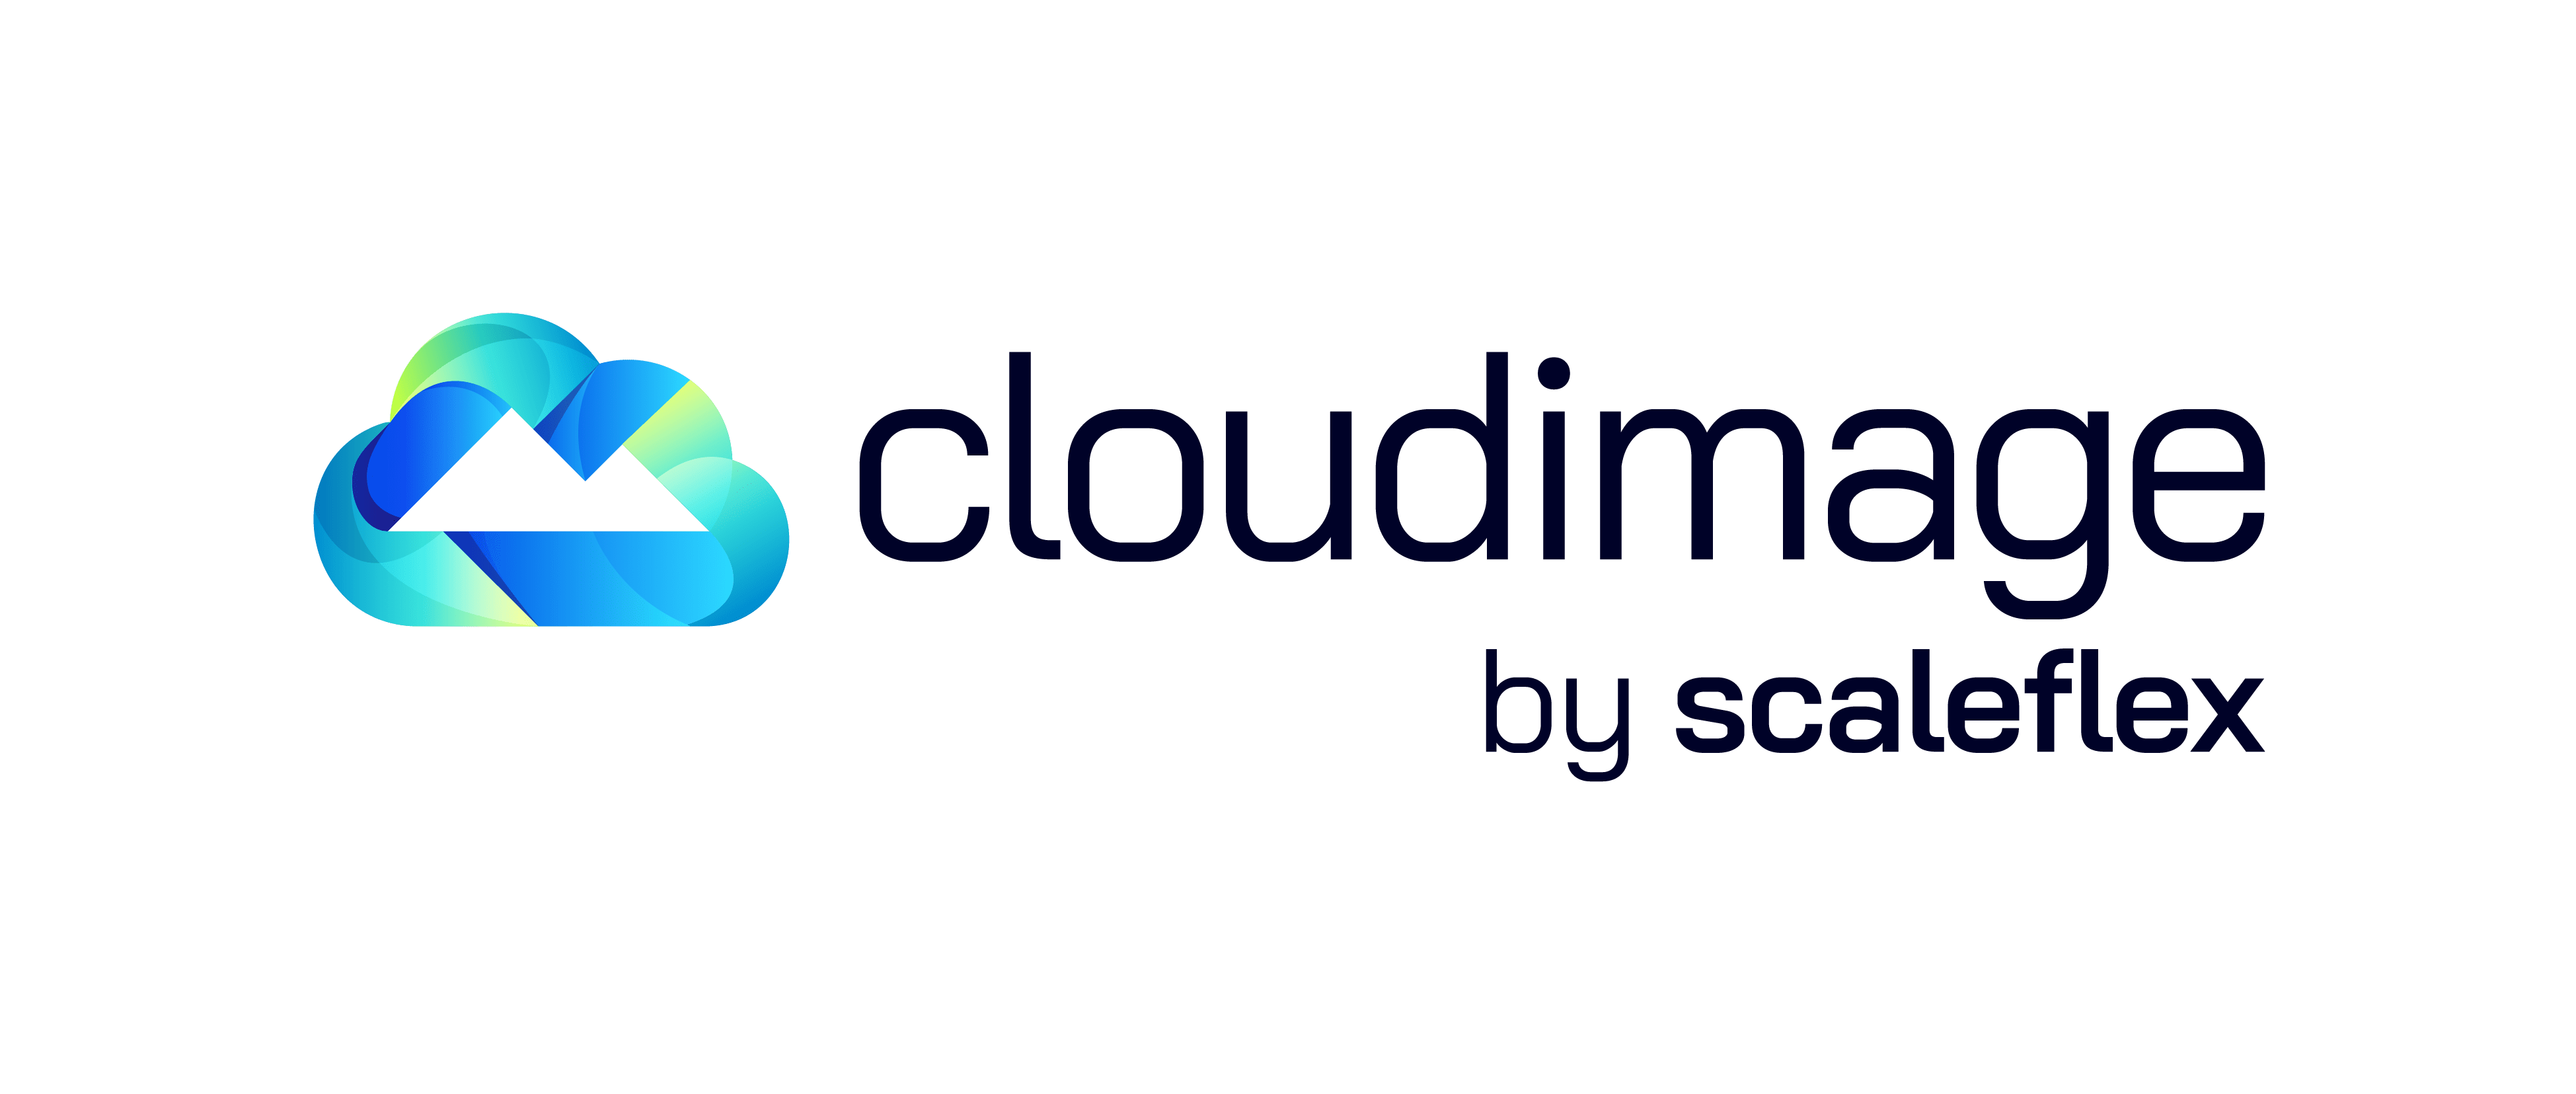 Cloudimage is the easiest way to resize, compress, optimise and deliver your images to your customers through rocket fast CDNs.